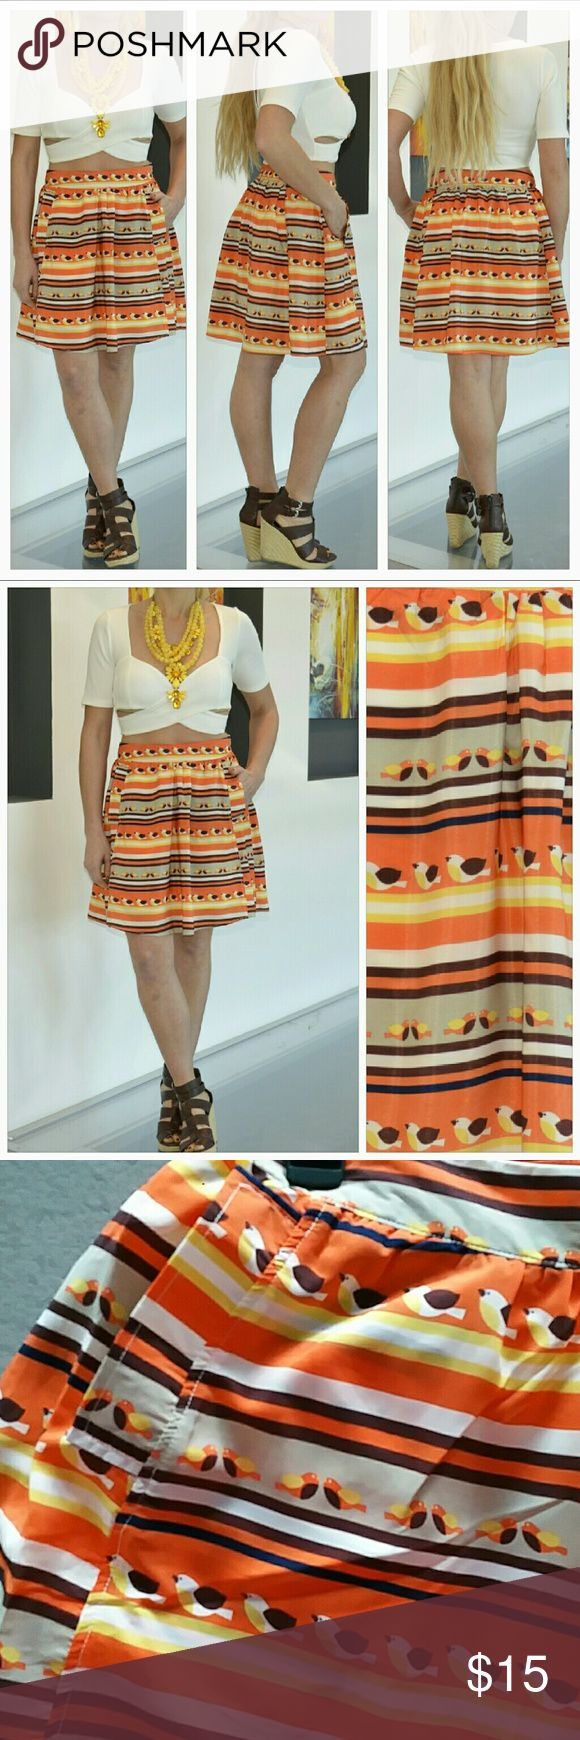 """SALEFUN n' FLIRTY skirt!! Grab this fun & playful skirt for your wardrobe! So cute with little birds flying all over. Colors are tan,brown, orange,yellow & cream Cute pockets in the front, perfect to hide you cell phone or money in. Pair this cutie with a t-shirt, statement necklace and blazer or denim jacket and you are off, looking fabulous!   Brand new, no tags. 100%polyester Length approx 18""""  Cream lining●Pockets in front ●Side zipper.   No trades Price is firm unless bundled Skirts"""